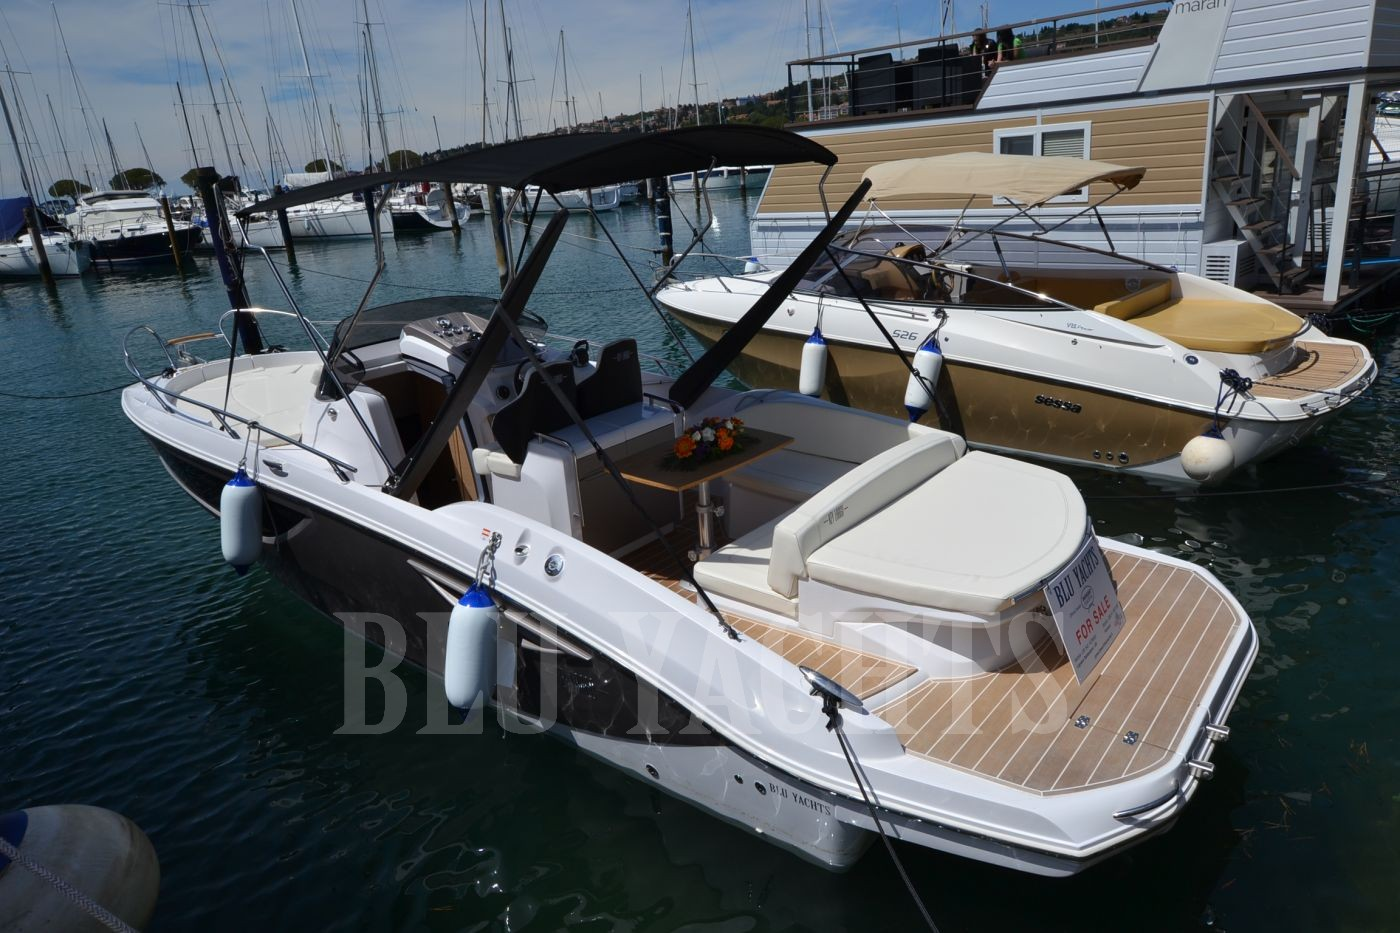 SESSA MARINE KEY LARGO 27 IB